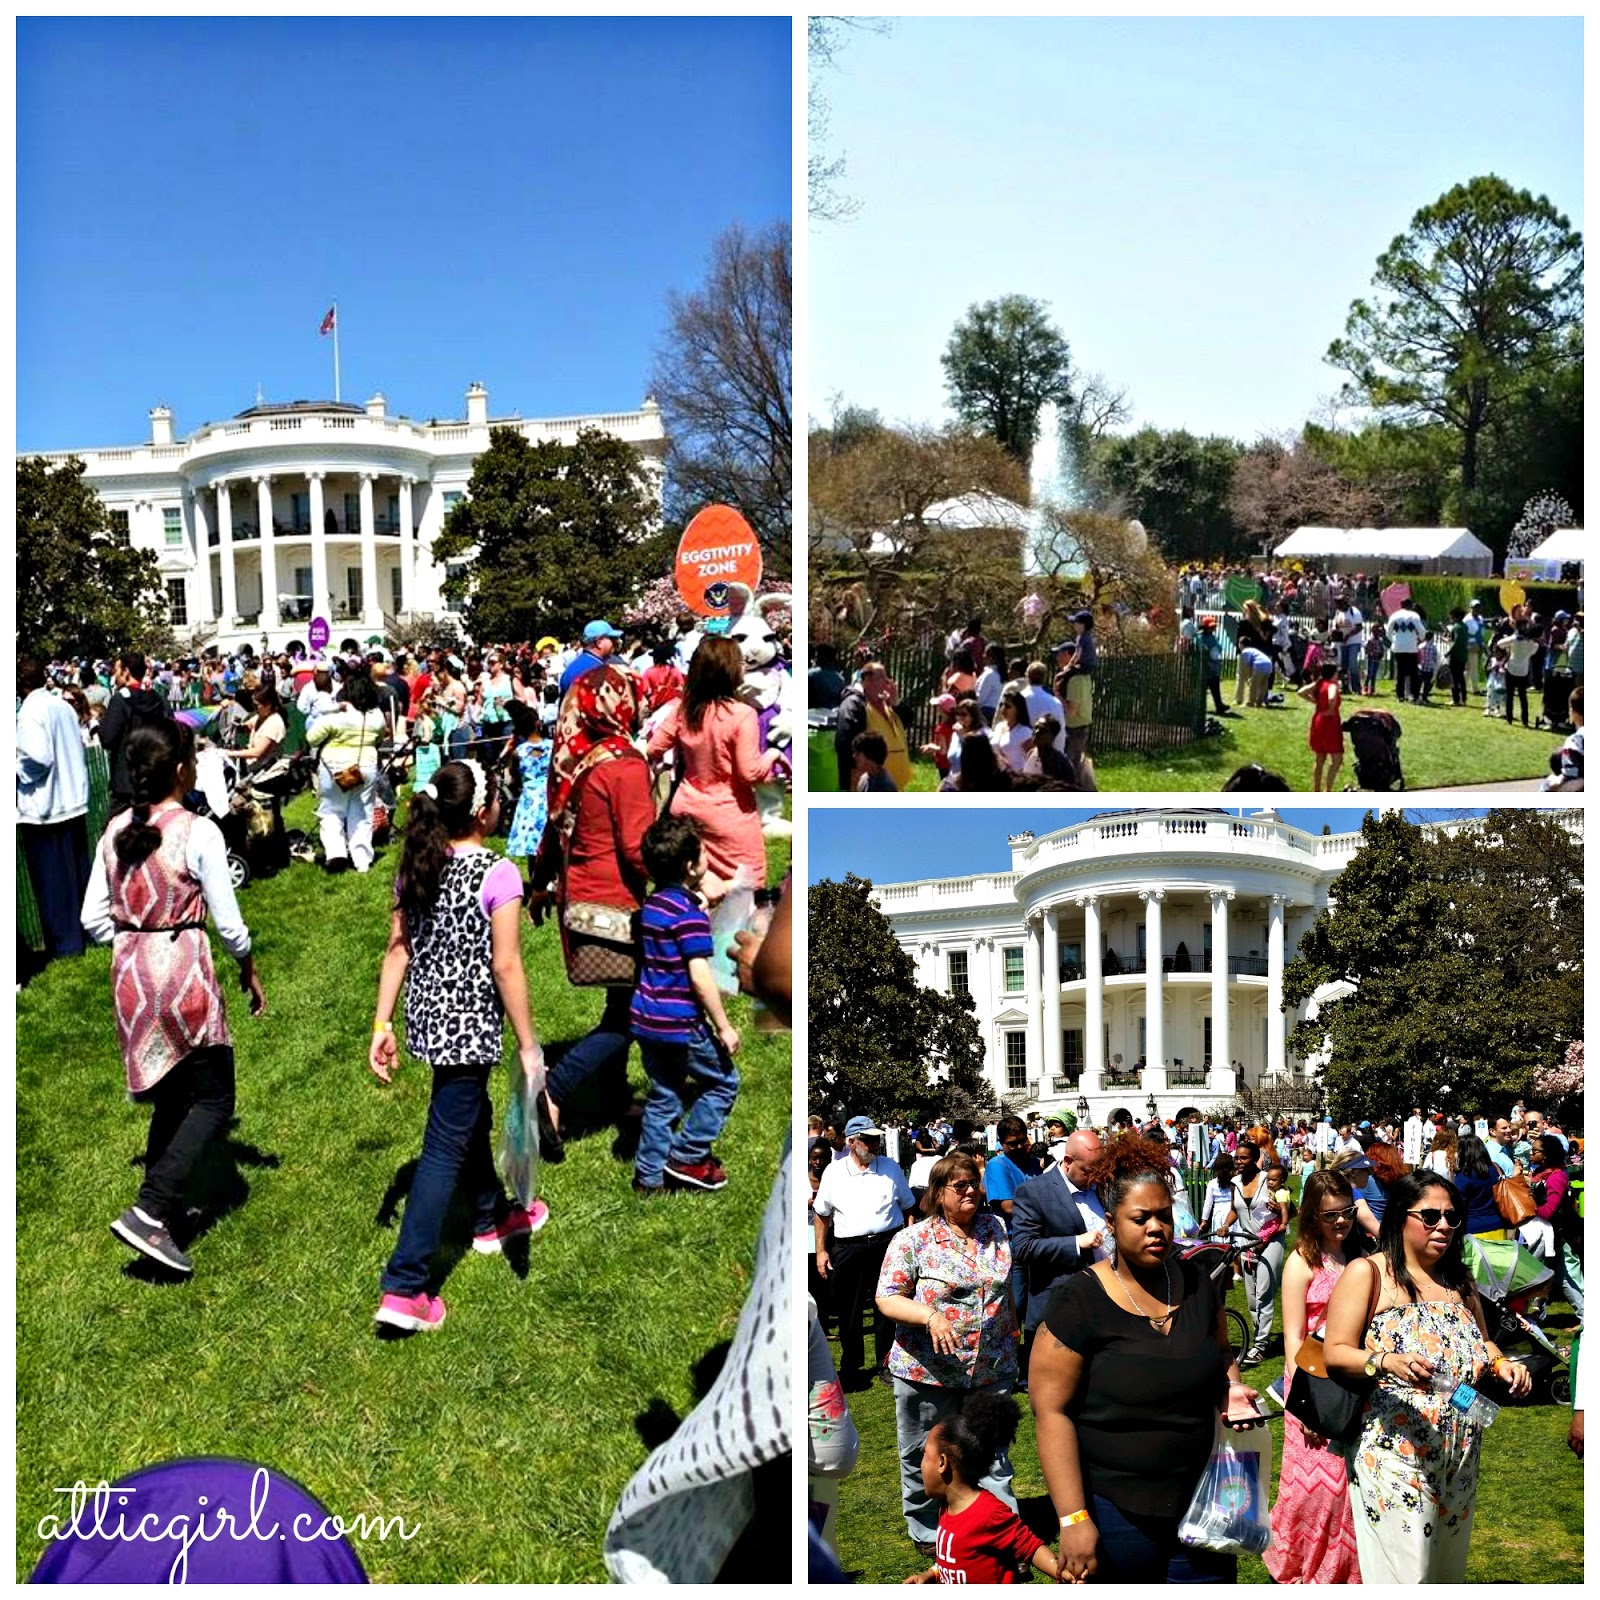 Easter Egg Roll 2015, Michelle Obama, President Obama, FLOTUS, POTUS, DC monuments, Tips for Visiting The White House Easter Egg Roll